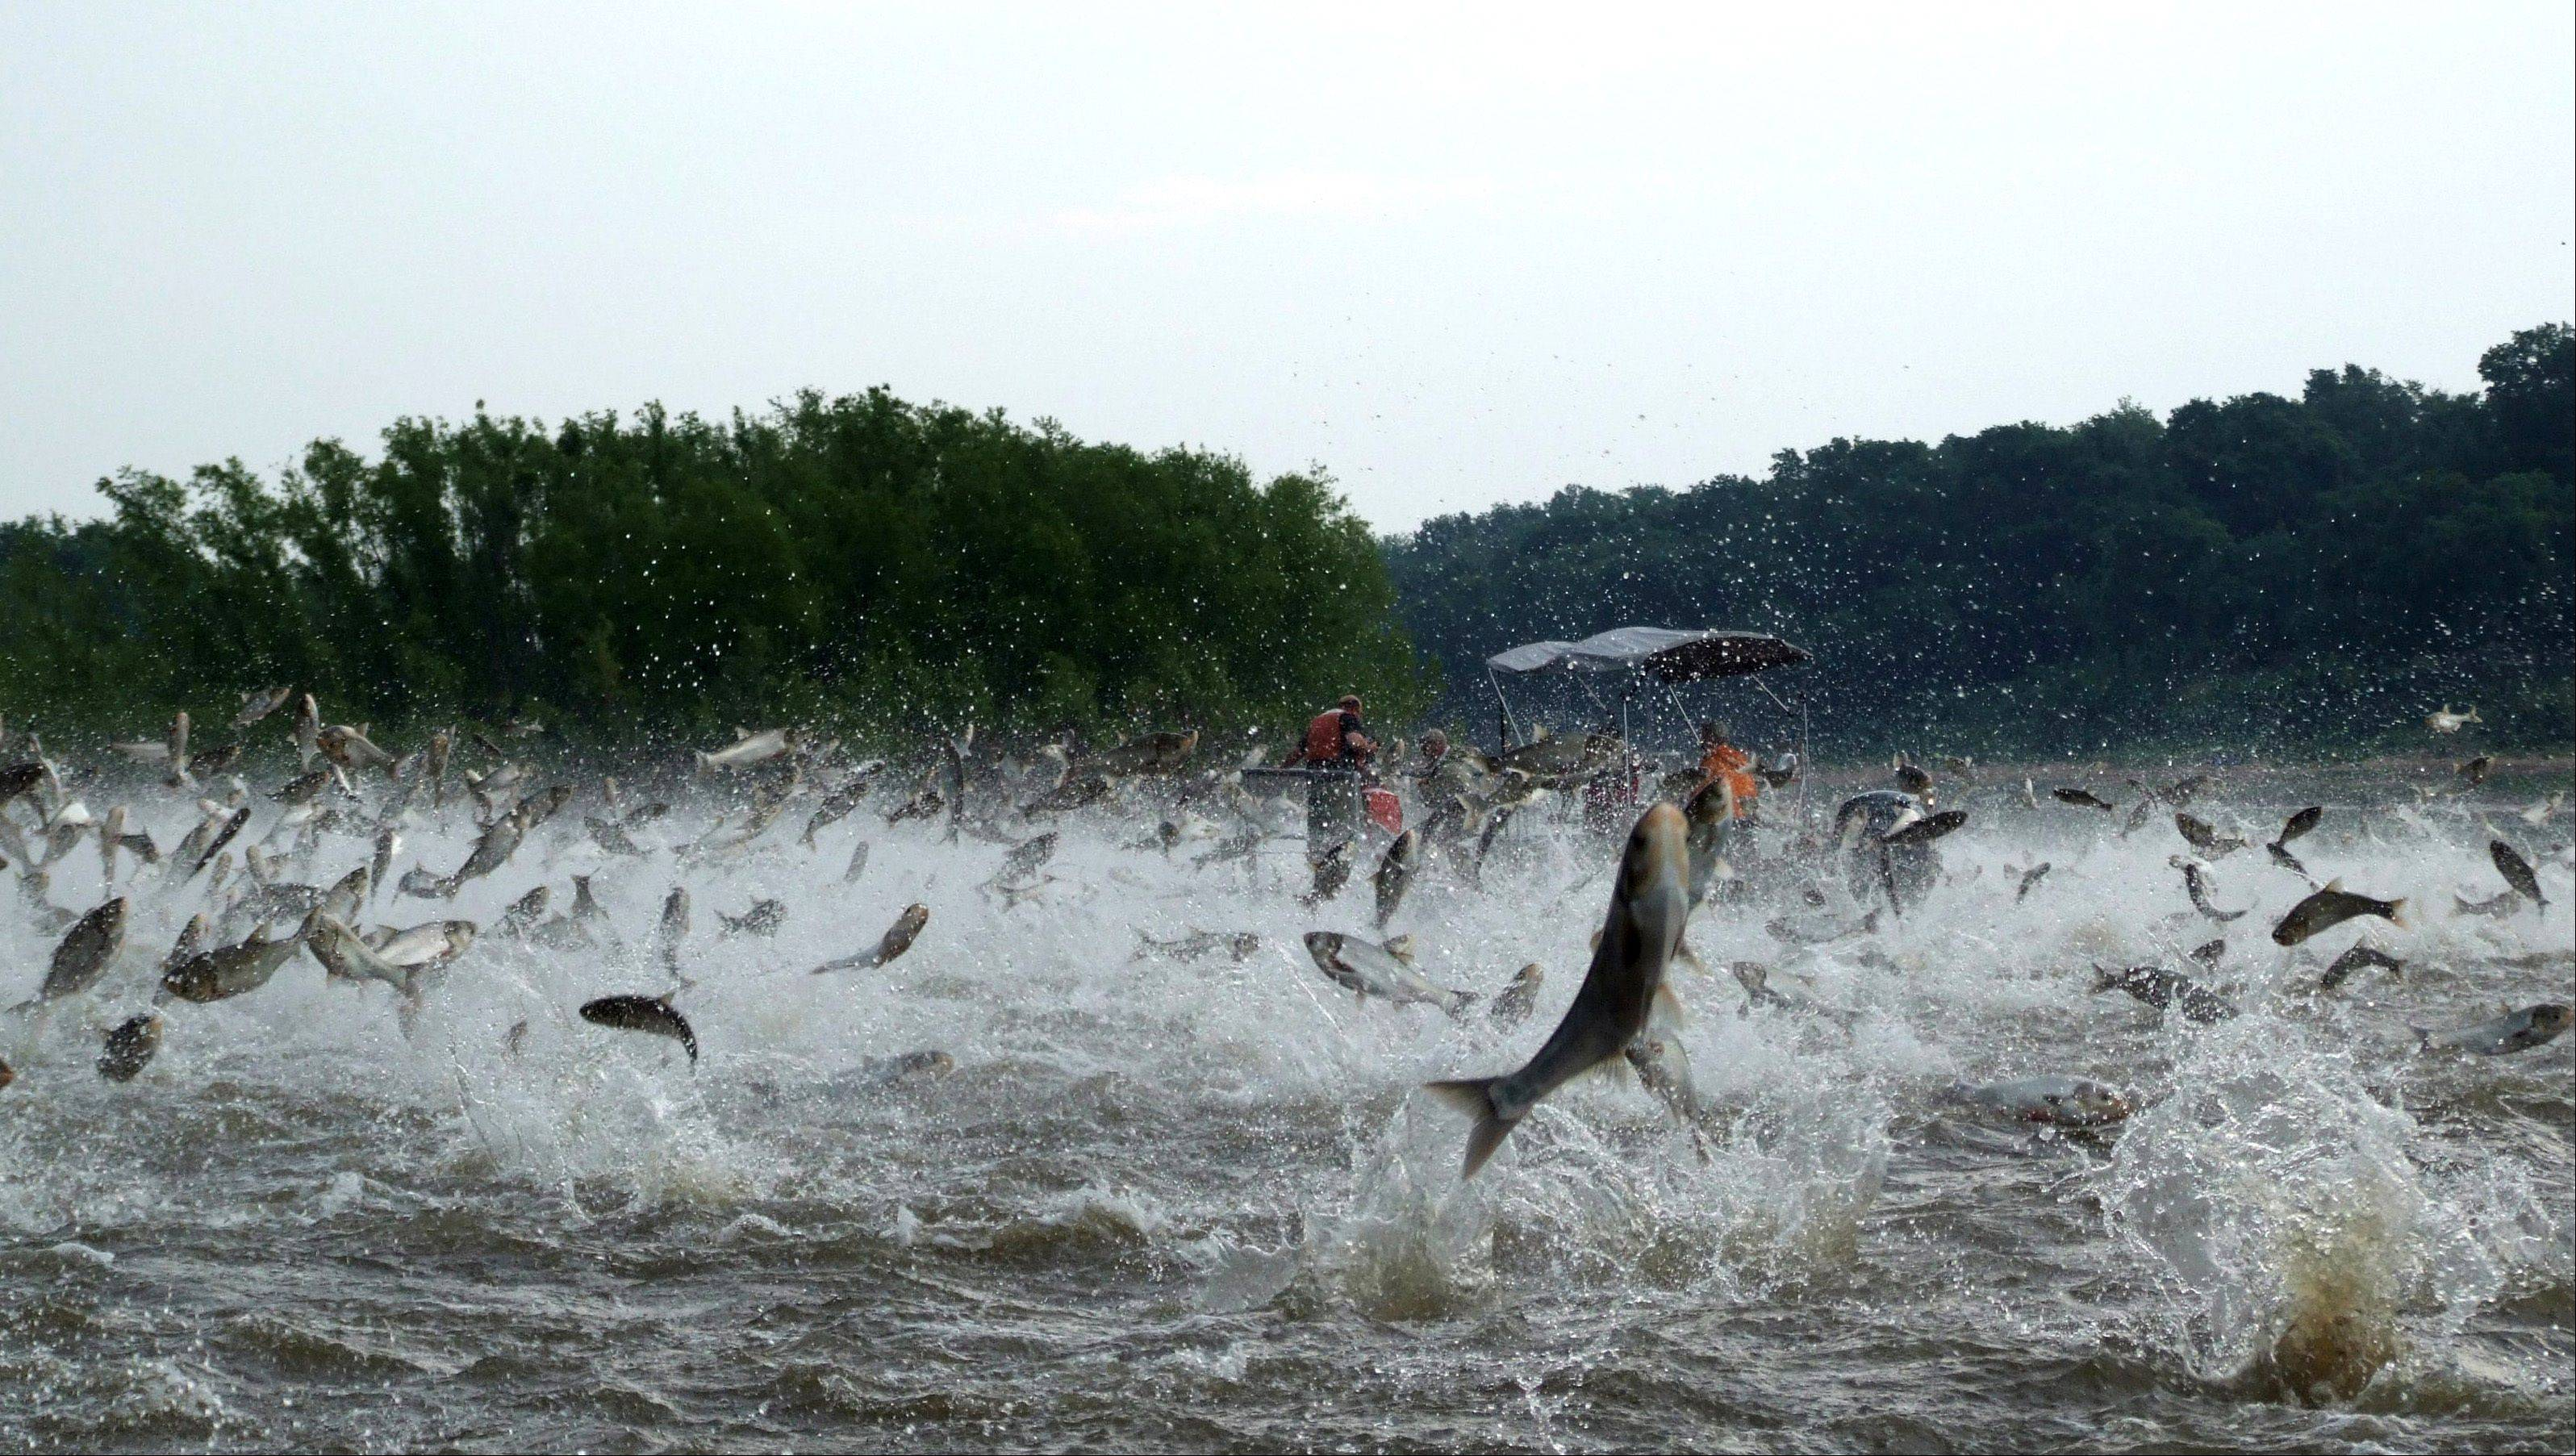 Illinois River Asian carp jump out of the water after being disturbed by sounds of watercraft in this 2009 file photo.